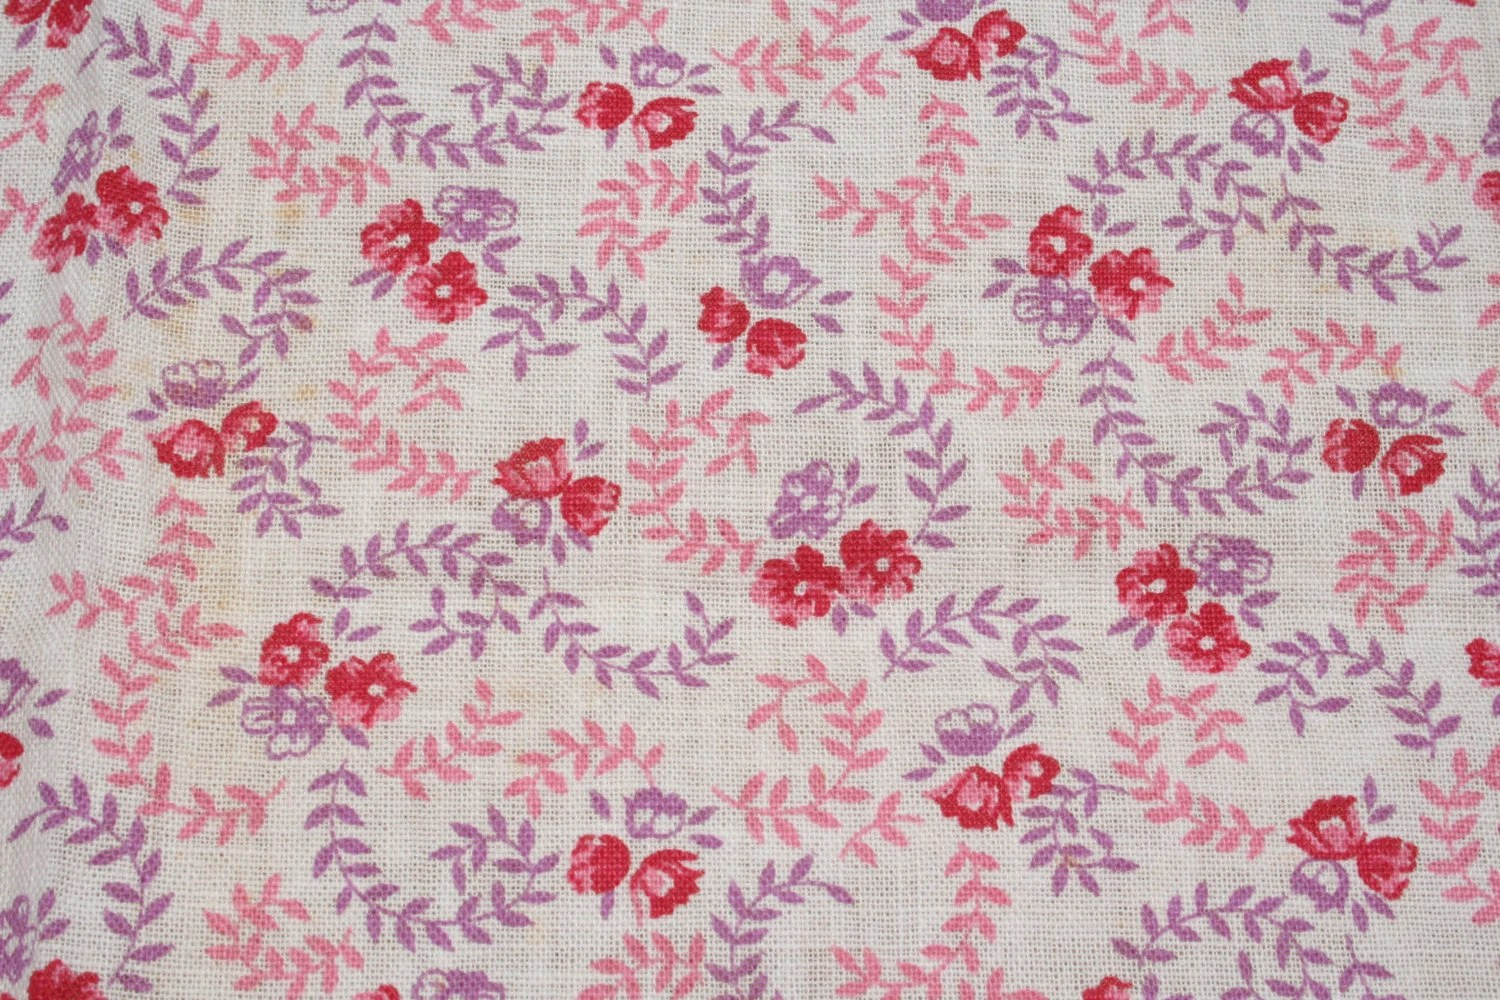 Flour Sack Fabric By The Yard Vintage Feedsack Flour Sack Fabric Pink Purple Calico Floral